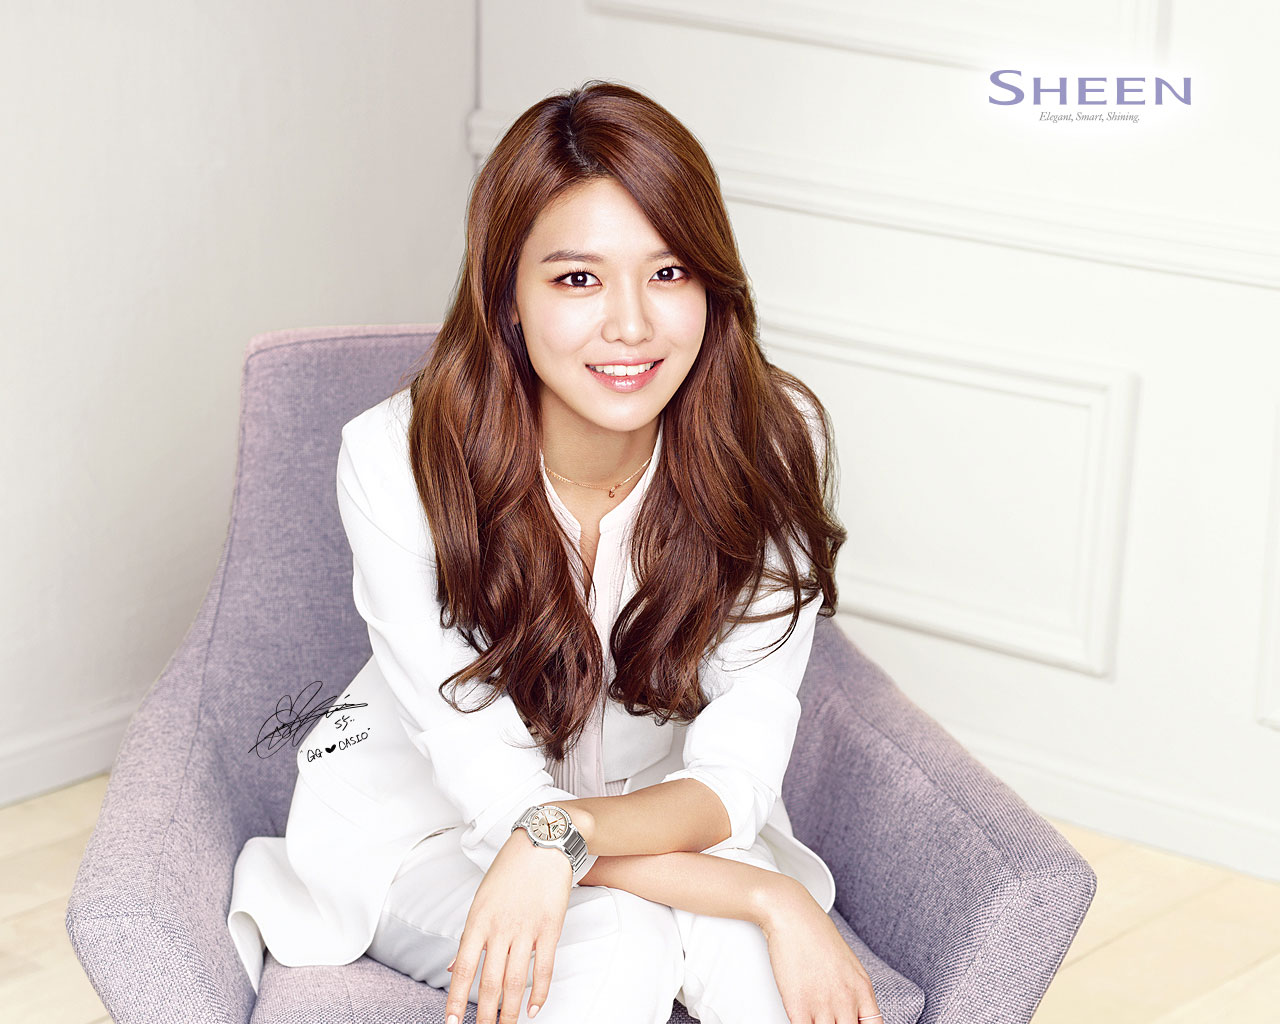 for Casio Sheen watches, featuring Girls' Generation's Sooyoung ...